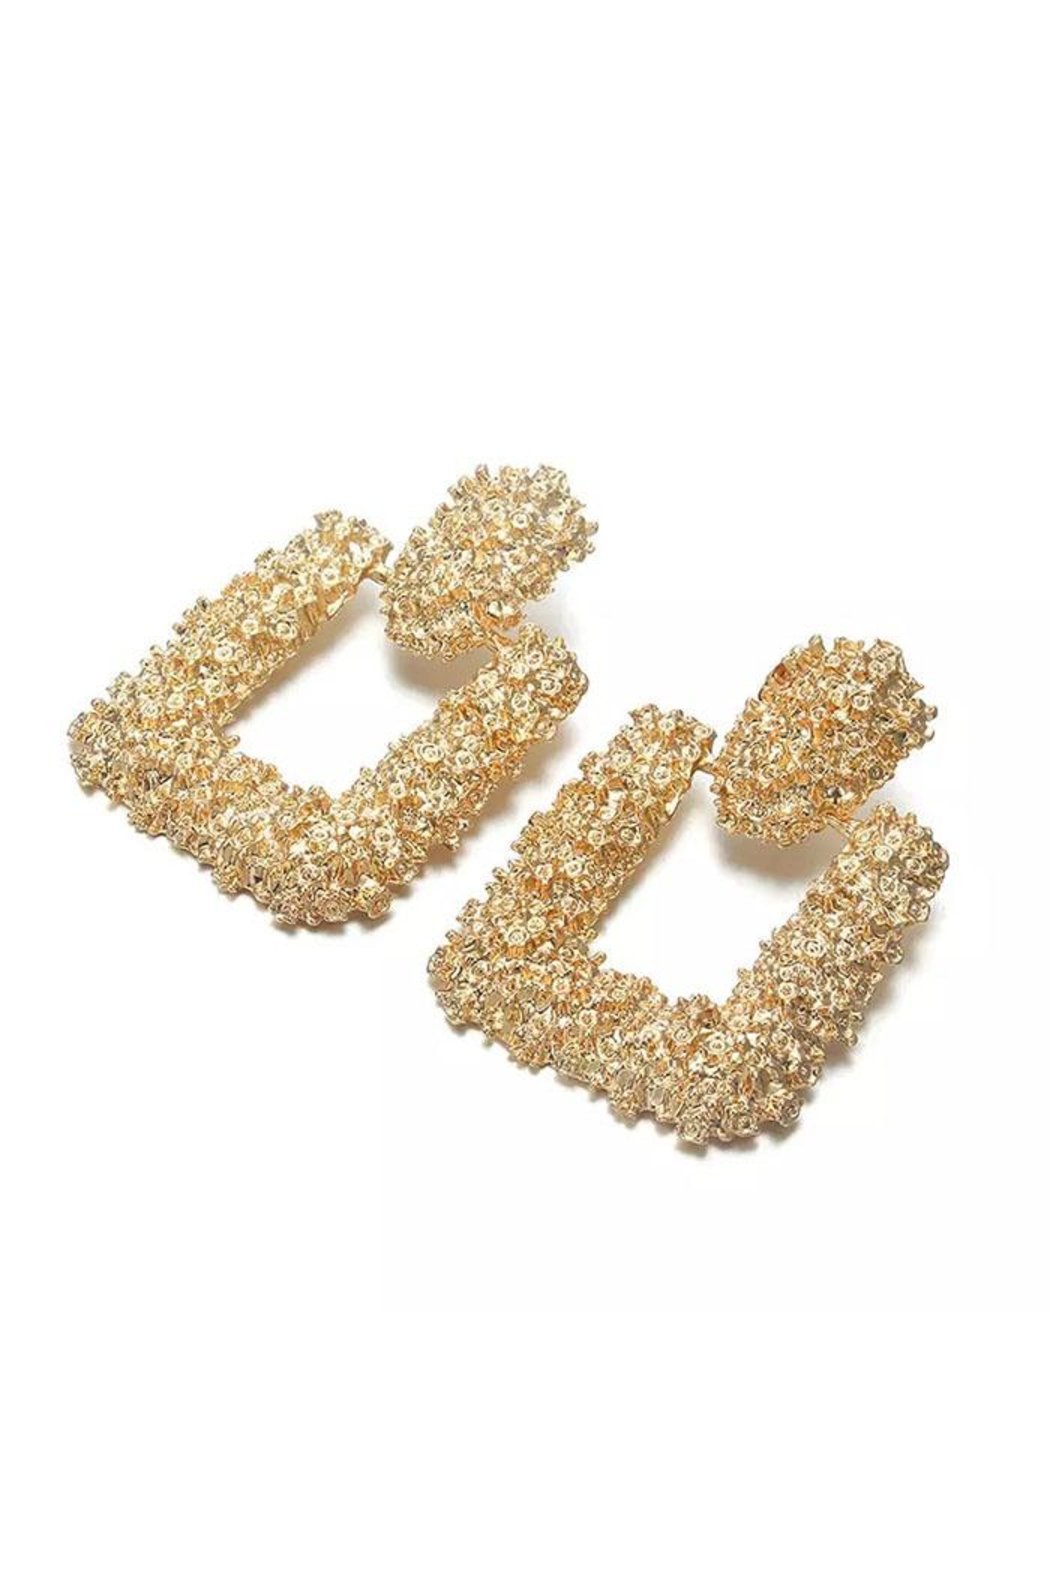 Madison Avenue Accessories Gold Square Earring - Main Image